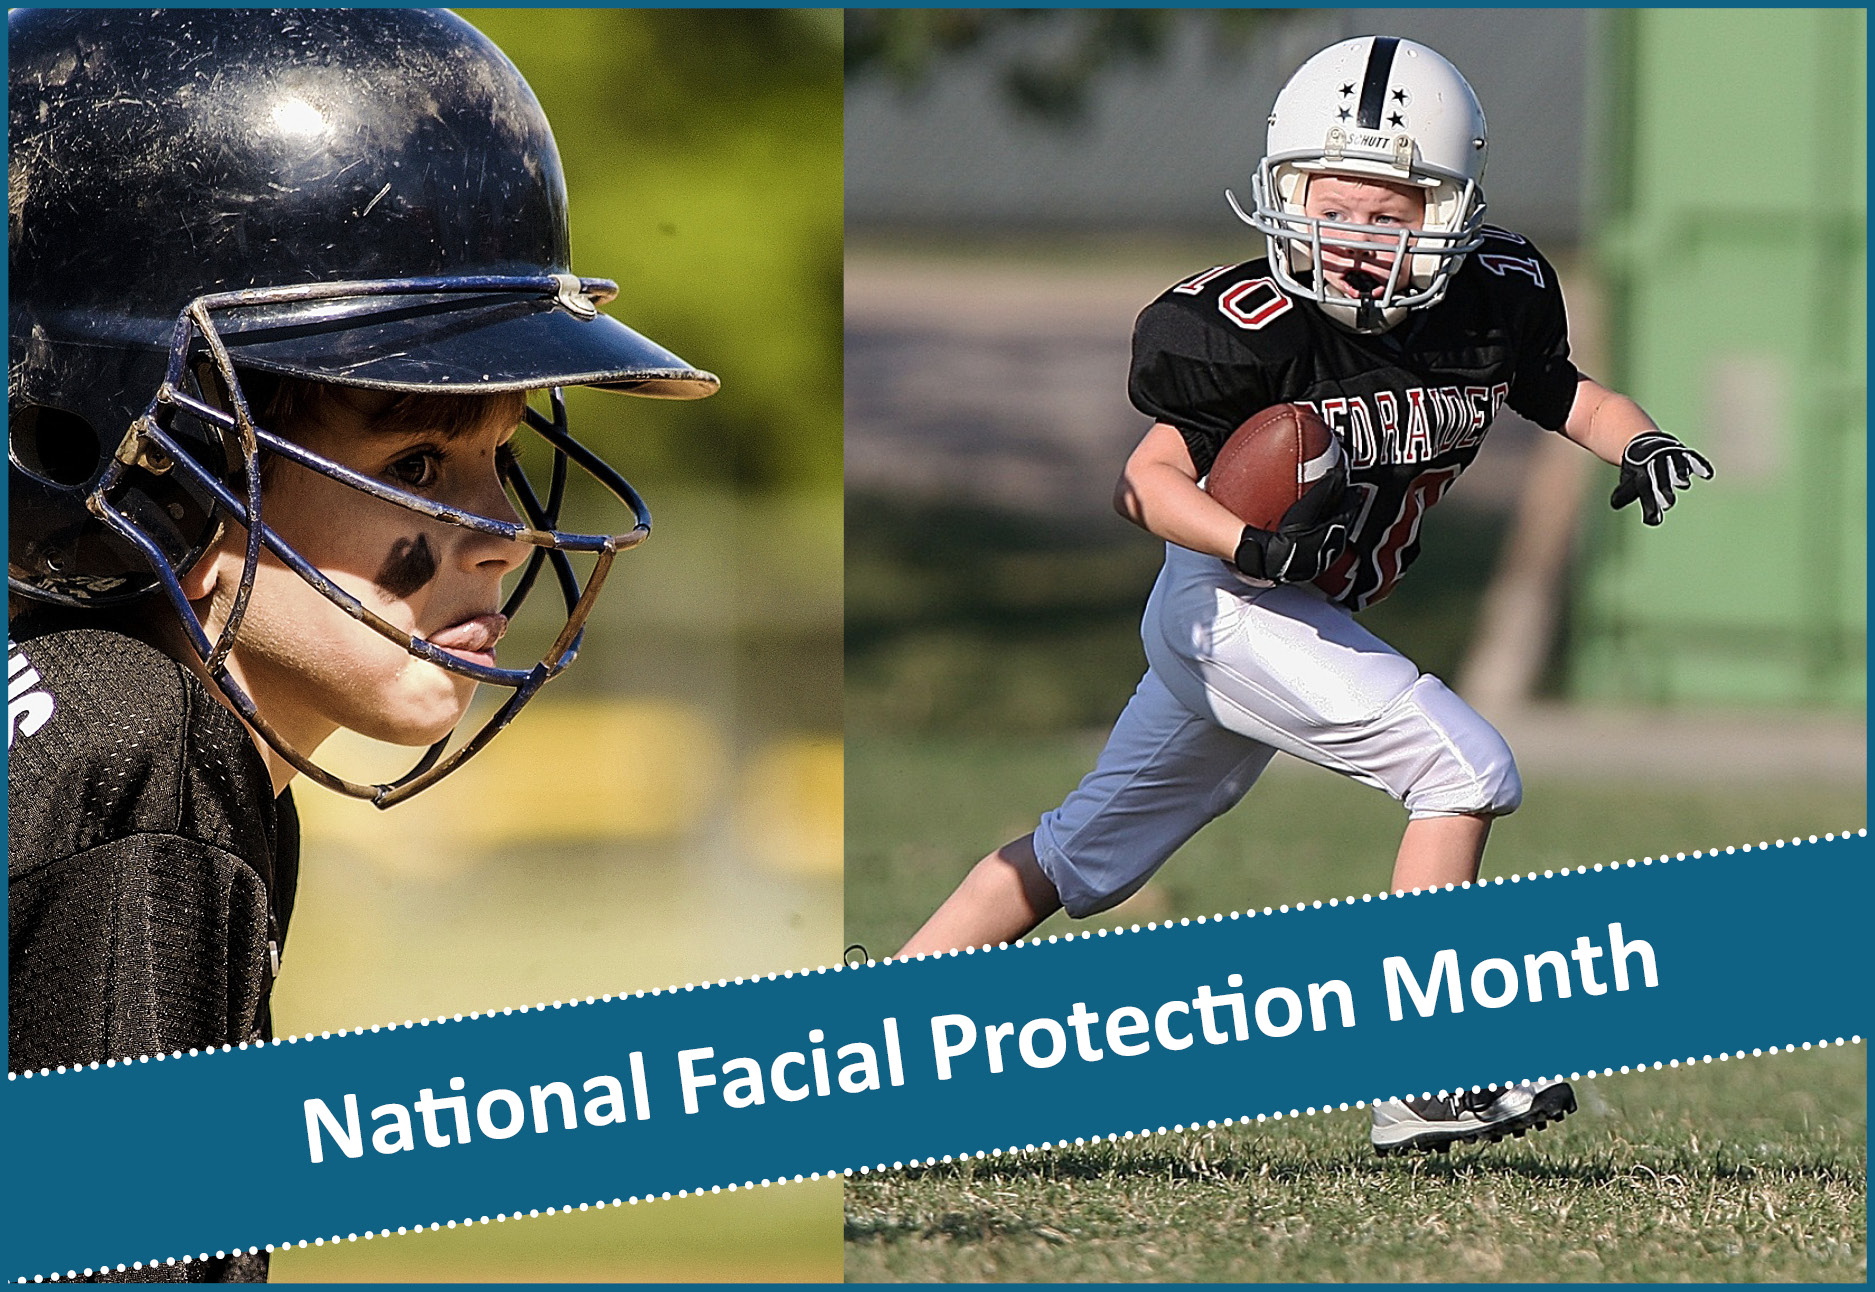 Kids in sports wearing facial protection and mouth guards